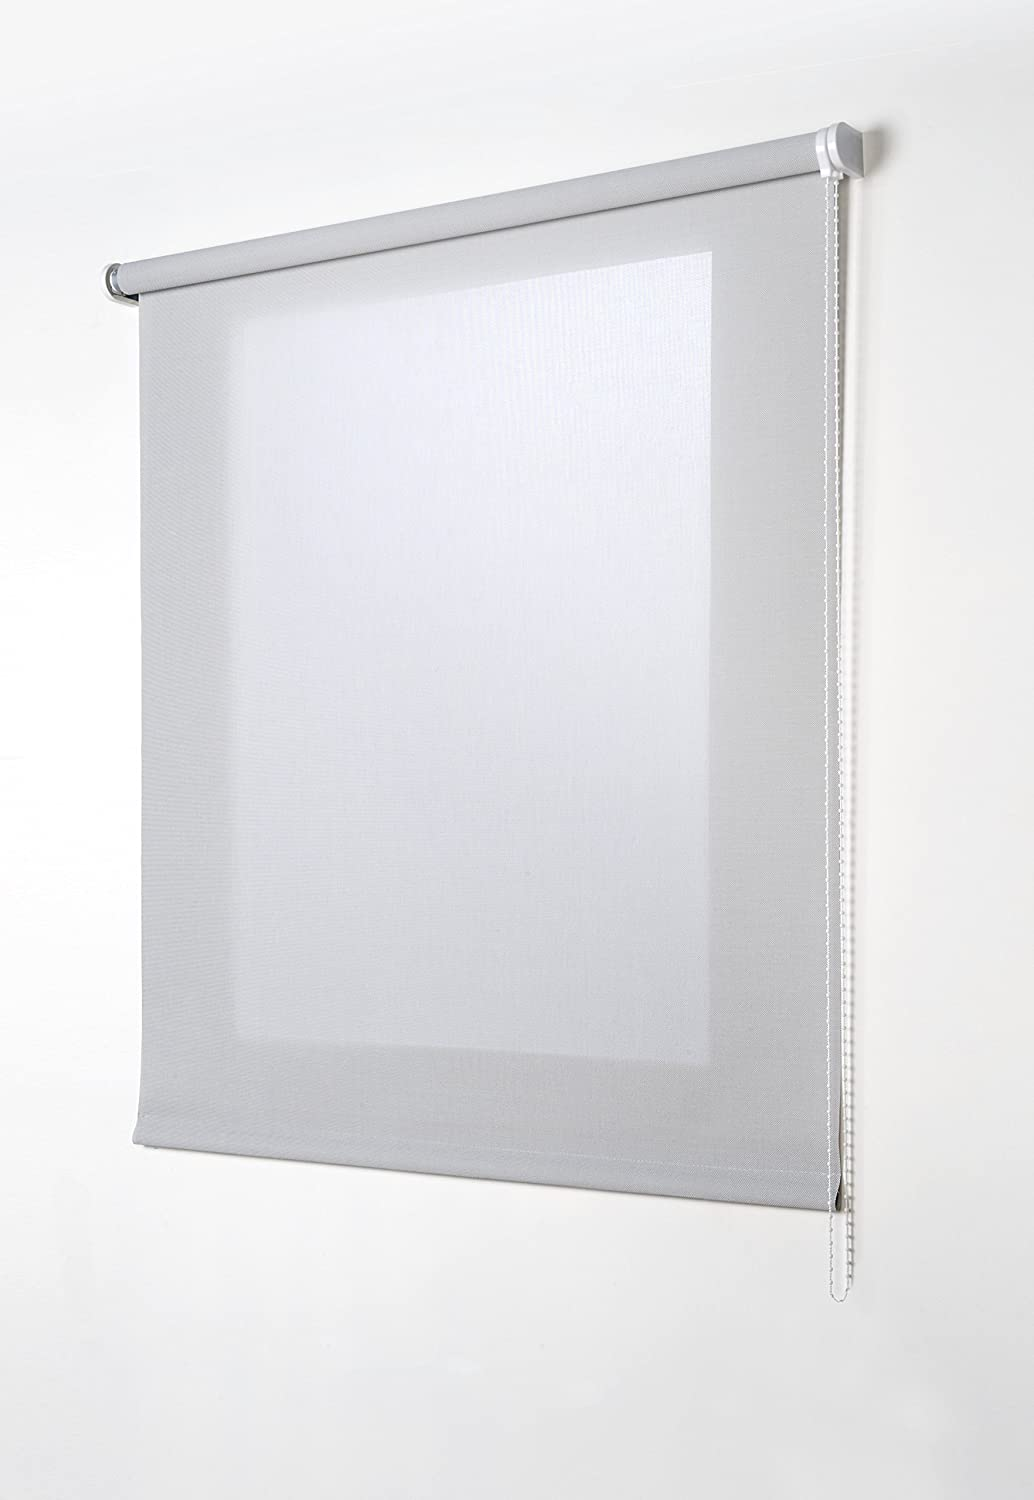 Estores Basic Screen Estor Enrollable, Tela, Gris, 150x180 cm: Amazon.es: Hogar